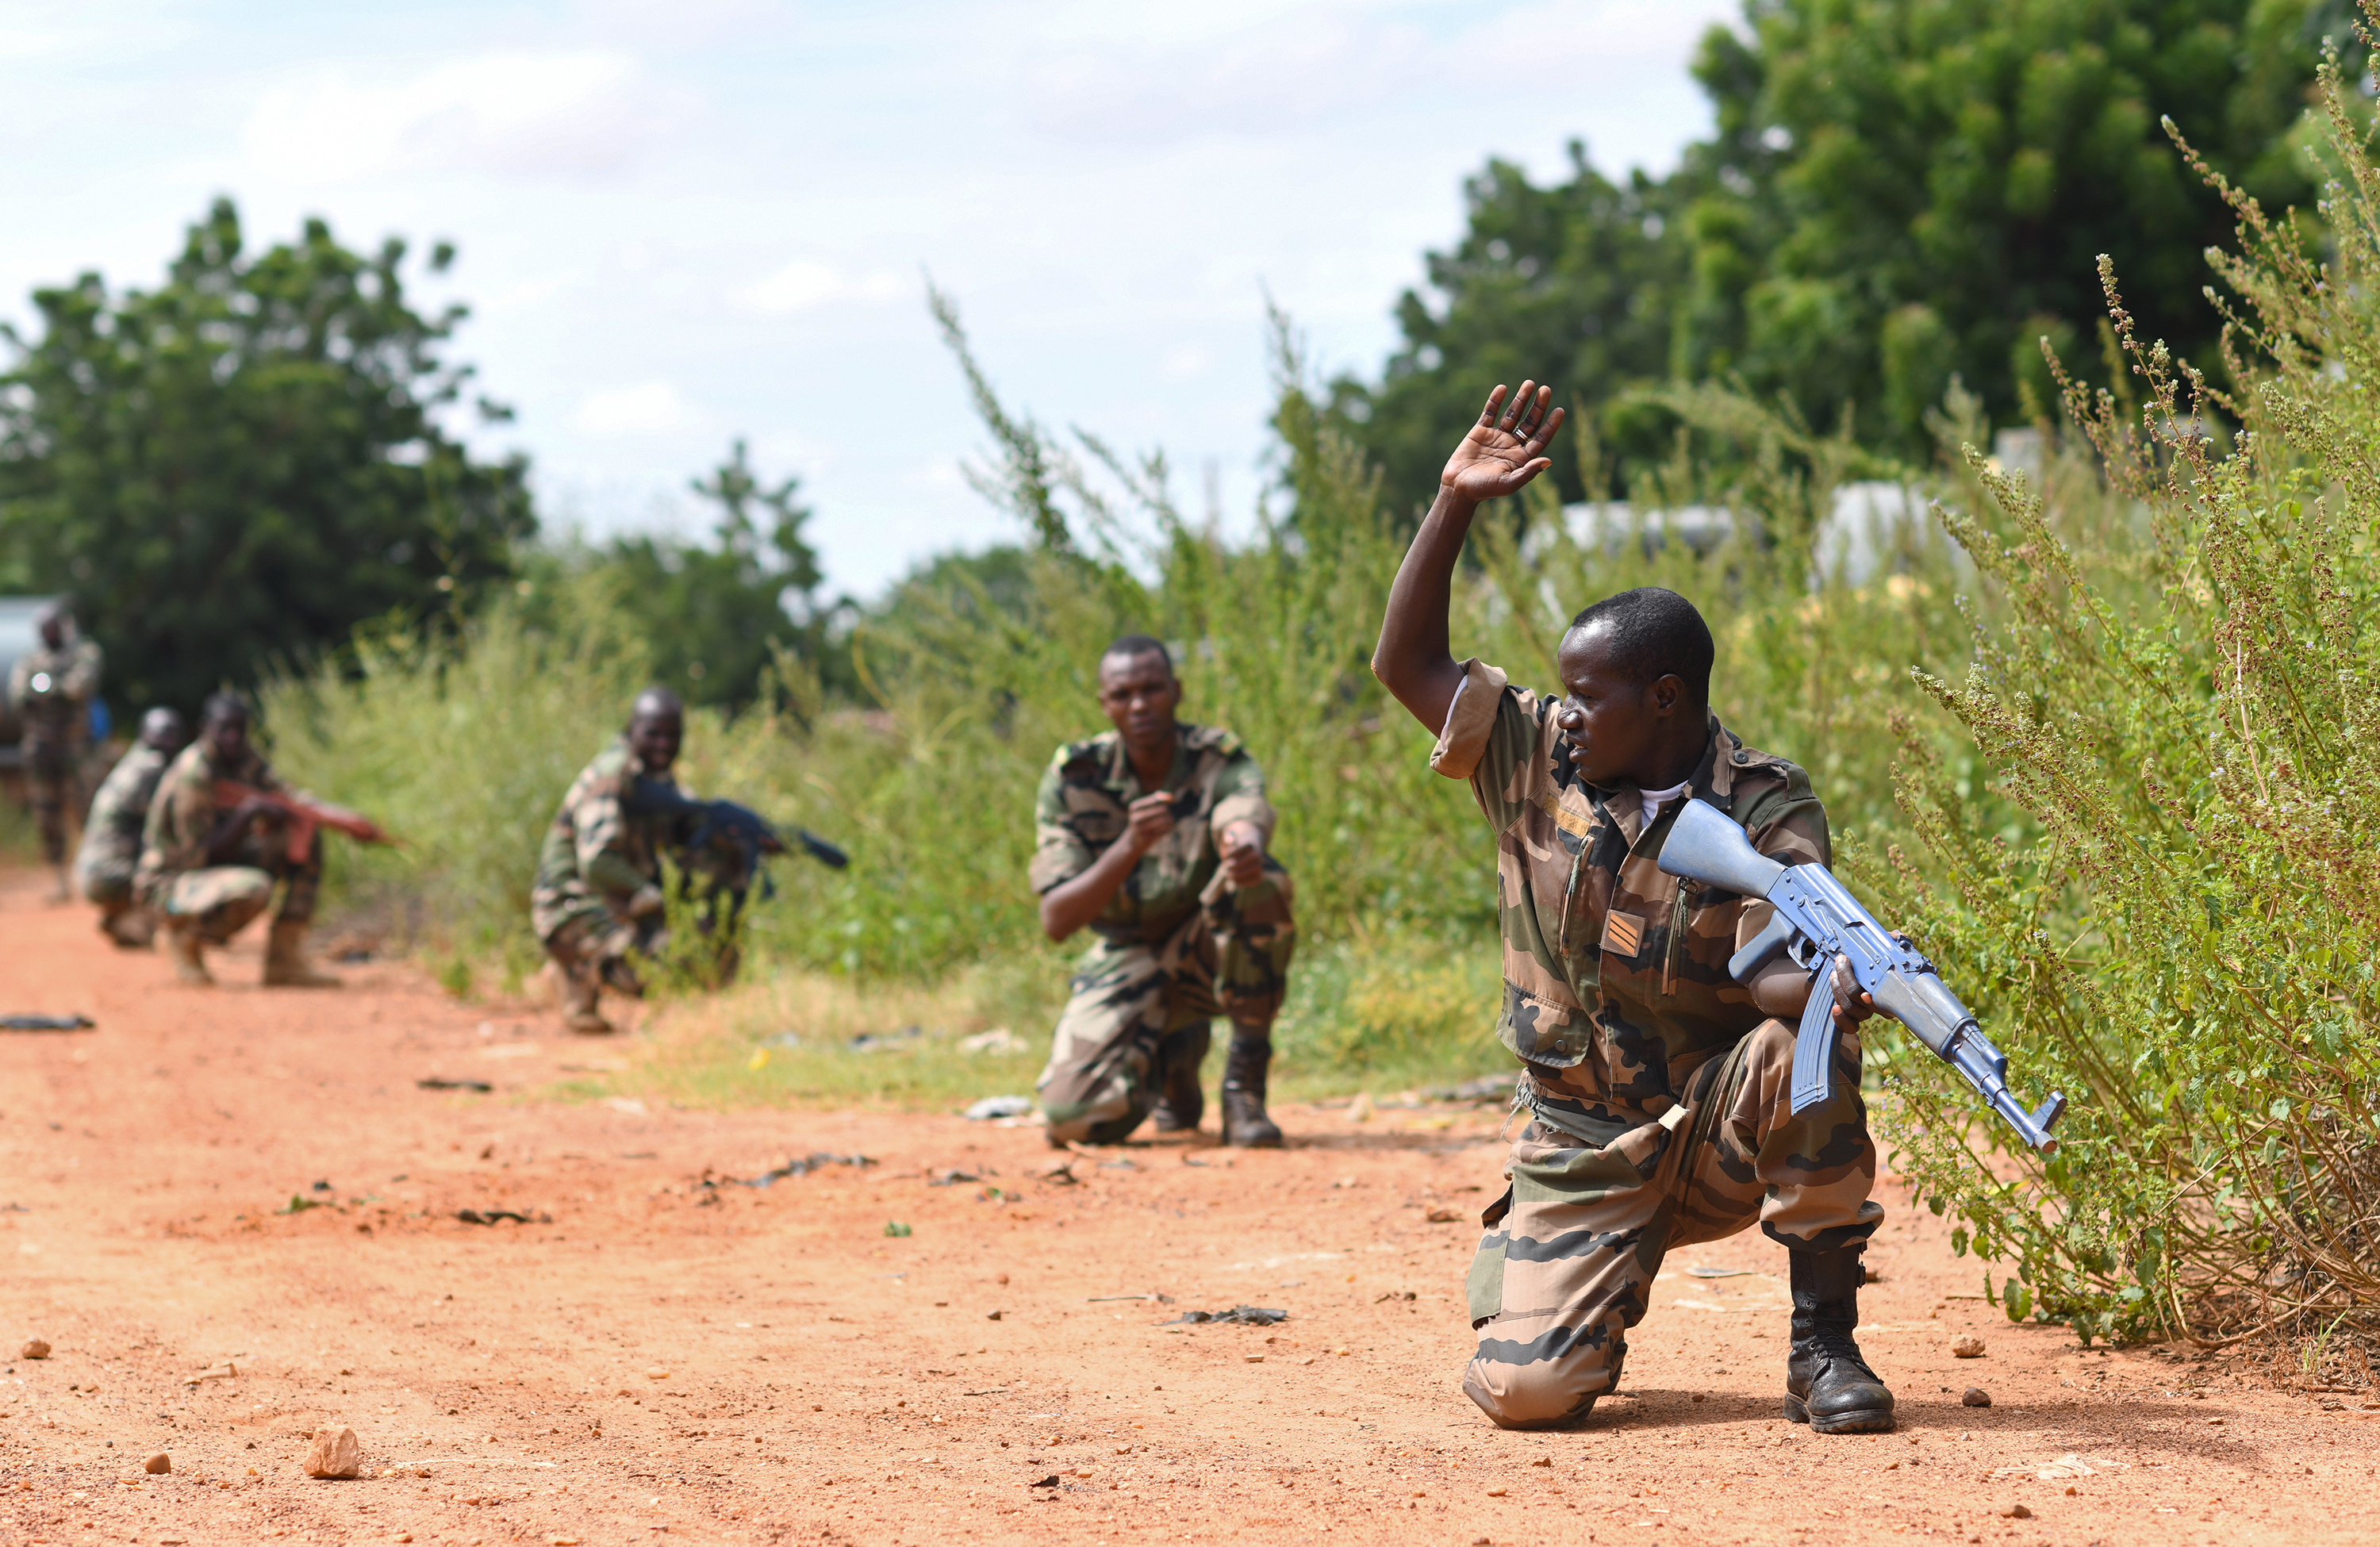 Forces Armées Nigeriennes (Nigerien Armed Forces) Genie Unit members crouch, alert to a simulated threat during an Improvised Explosive Device Awareness Course in Niamey, Niger, Oct. 11, 2019. During the week-long course, the 768th Expeditionary Air Base Squadron Explosive Ordnance Disposal team and Security Forces Air Advisors taught FAN personnel valuable skills for the deployed environment such as how to locate and react to an IED, how to set up a cordon and the procedures to clear the area. (U.S. Air Force photo by Staff Sgt. Alex Fox Echols III)